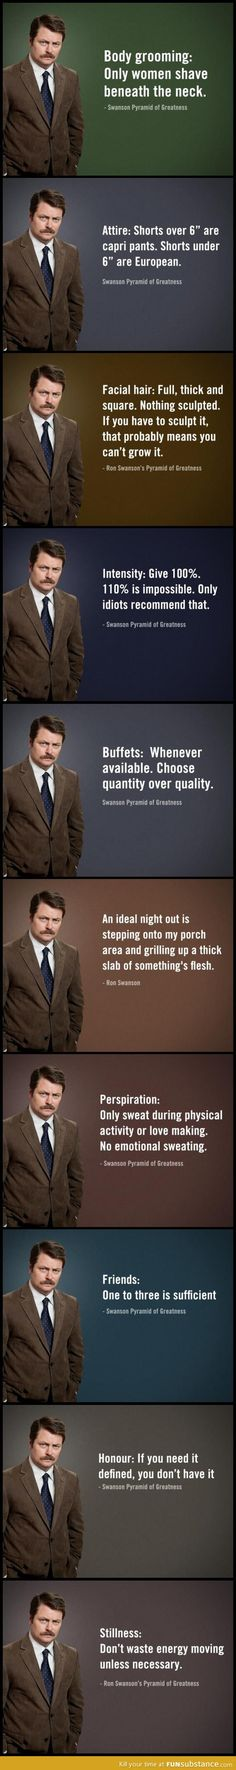 Some wise words from ron swanson